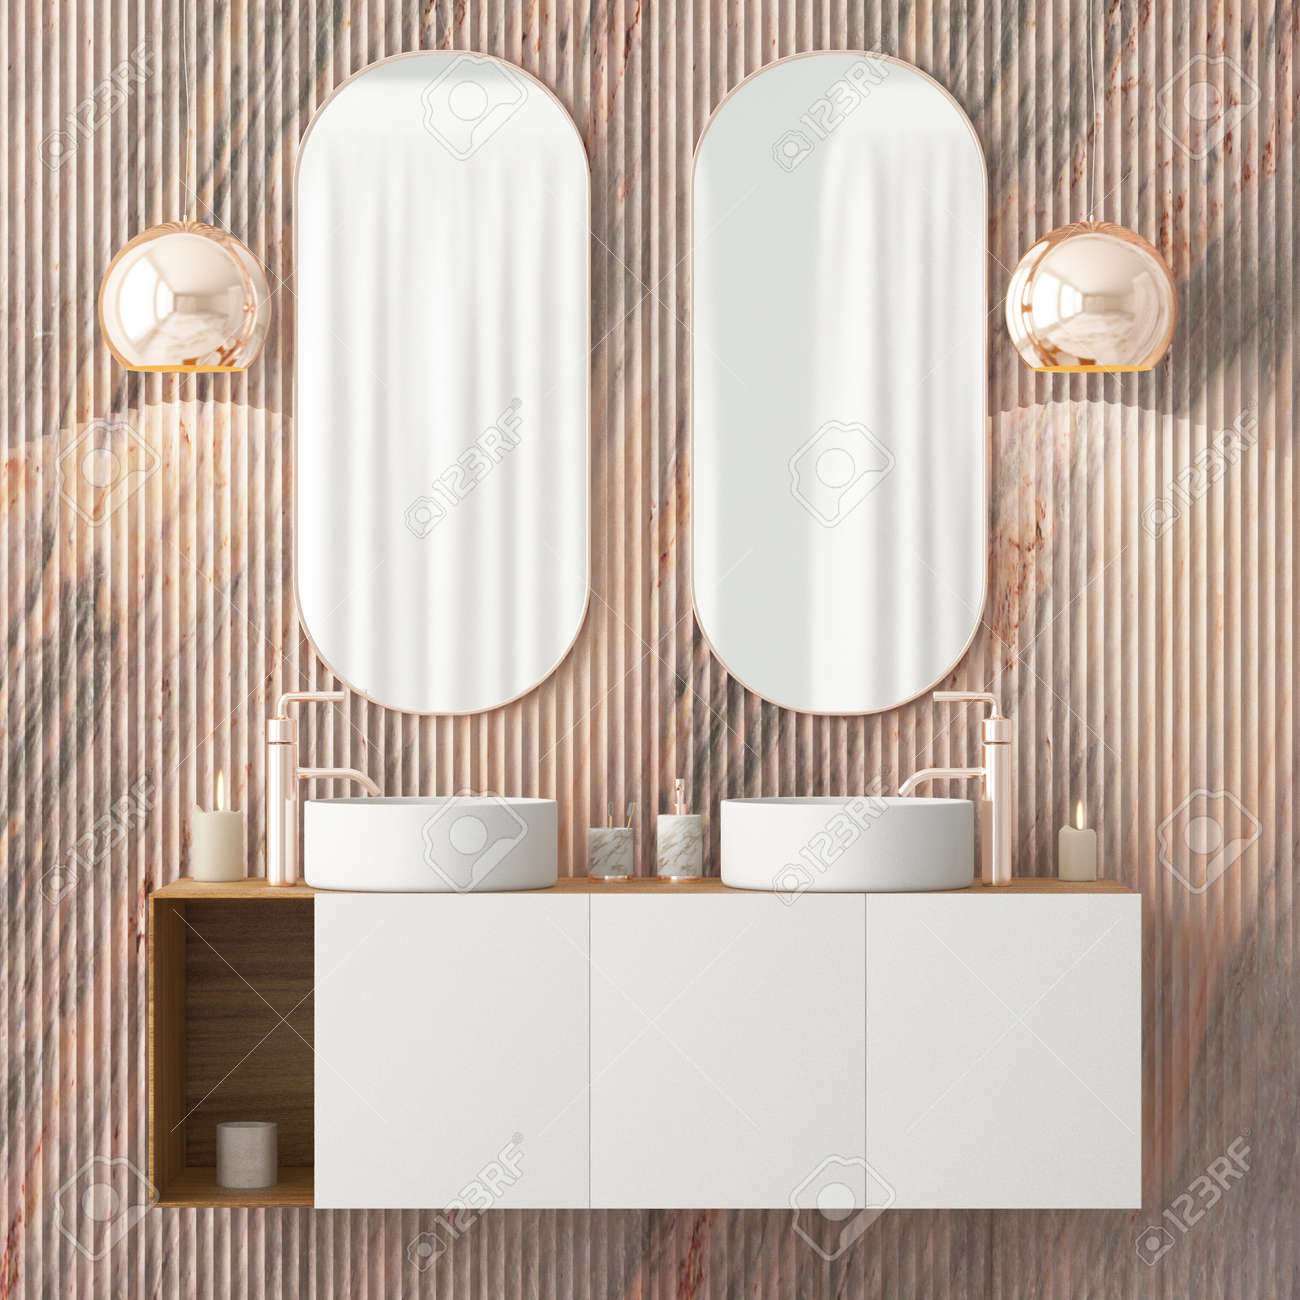 The Interior Of The Bathroom Is In Art Deco Style 3d Illustration Stock Photo Picture And Royalty Free Image Image 103324015